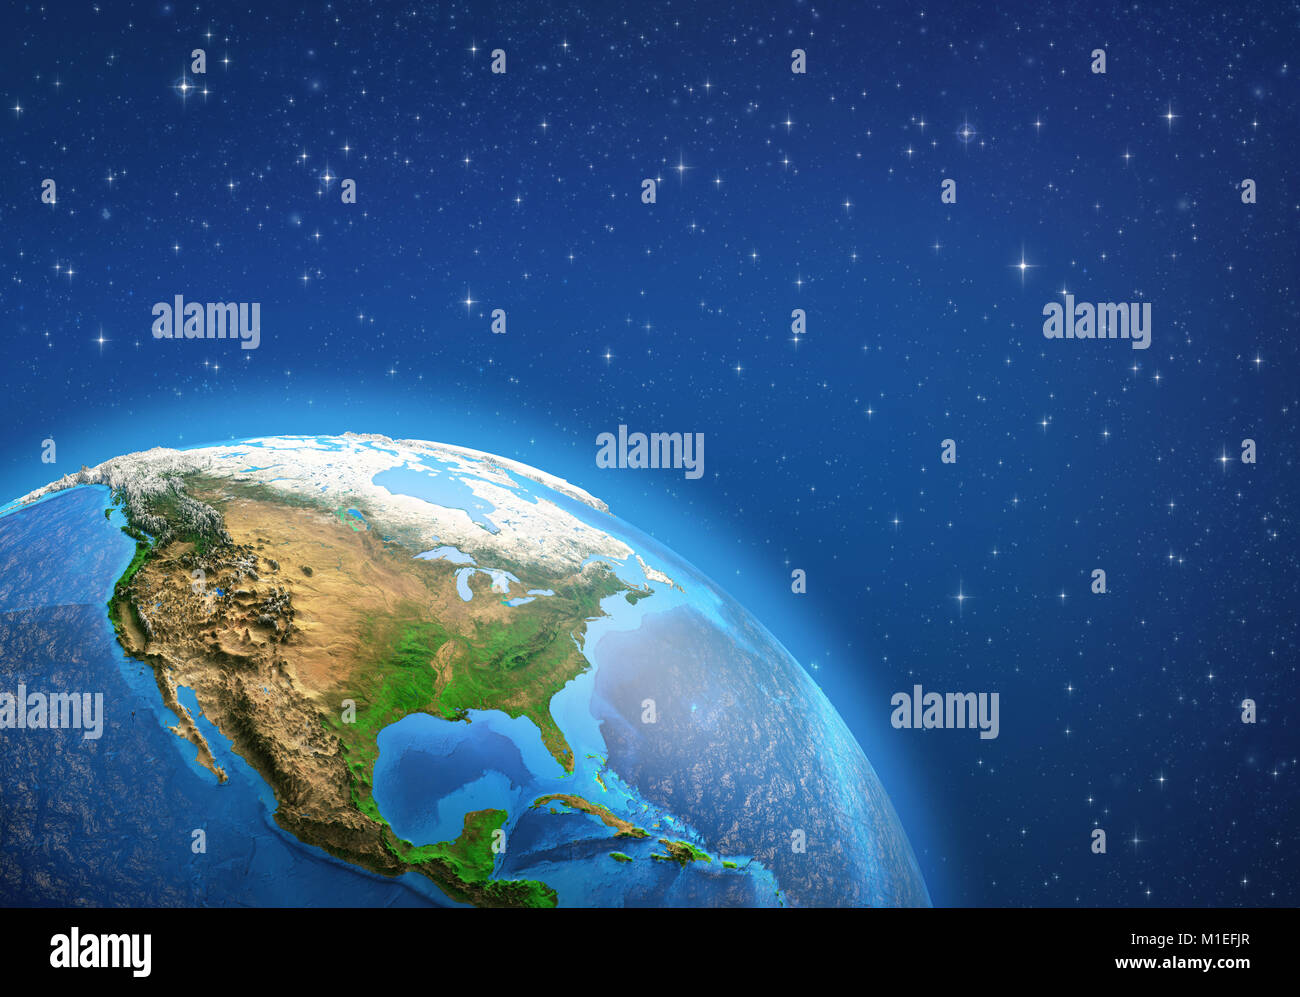 Planet Earth in deep space, focused on North America. 3D illustration - Elements of this image furnished by NASA. - Stock Image